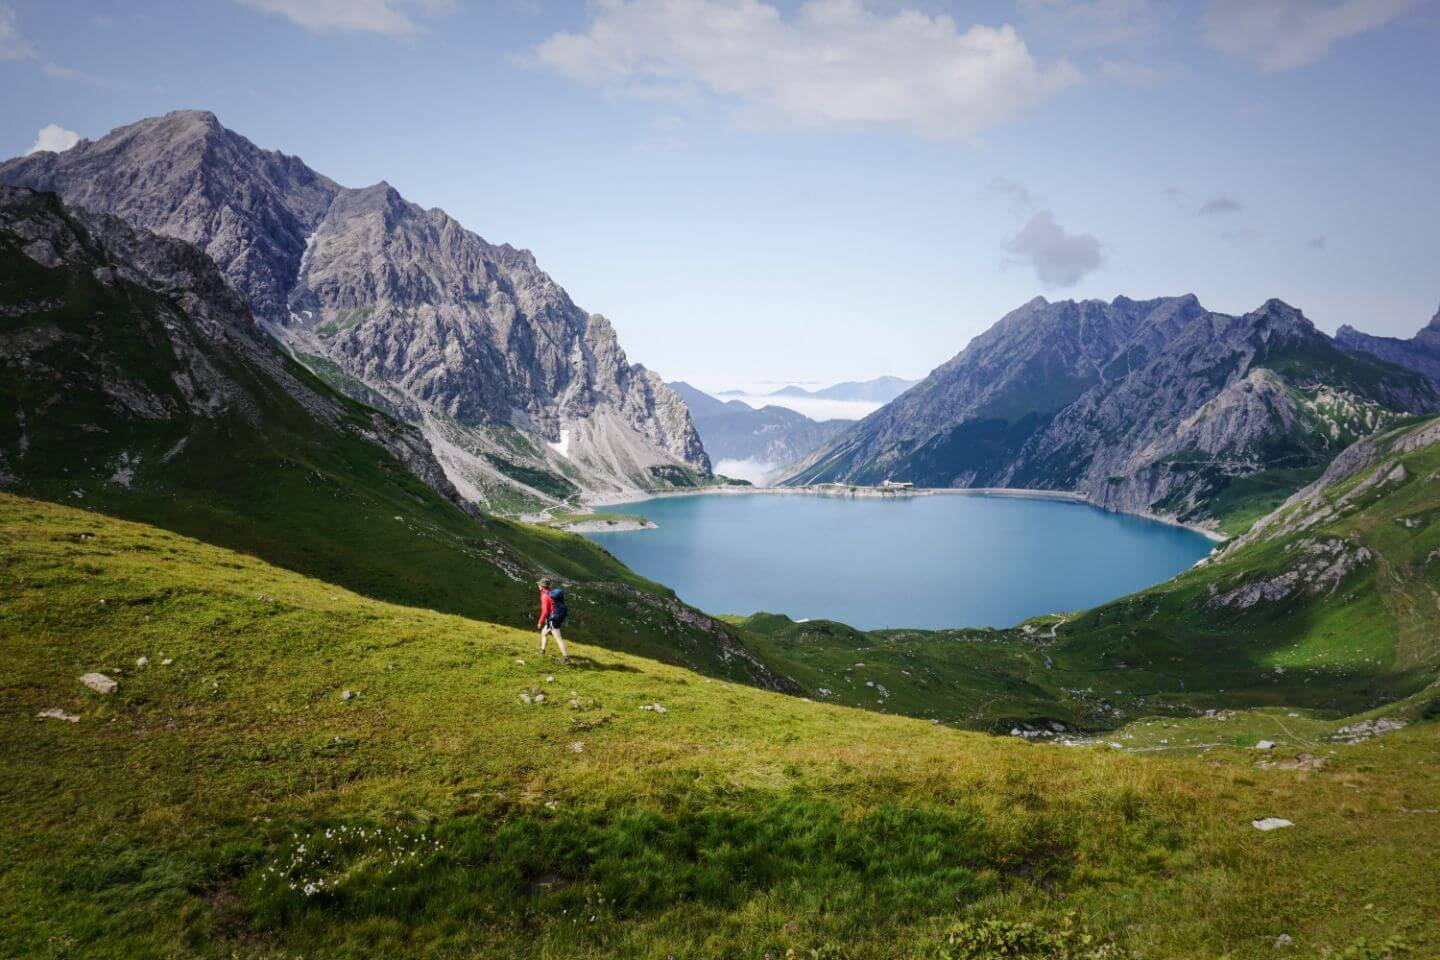 Hike to Gafalljoch Ridge, Swiss-Austrian Border, from Lünersee Lake, Austria